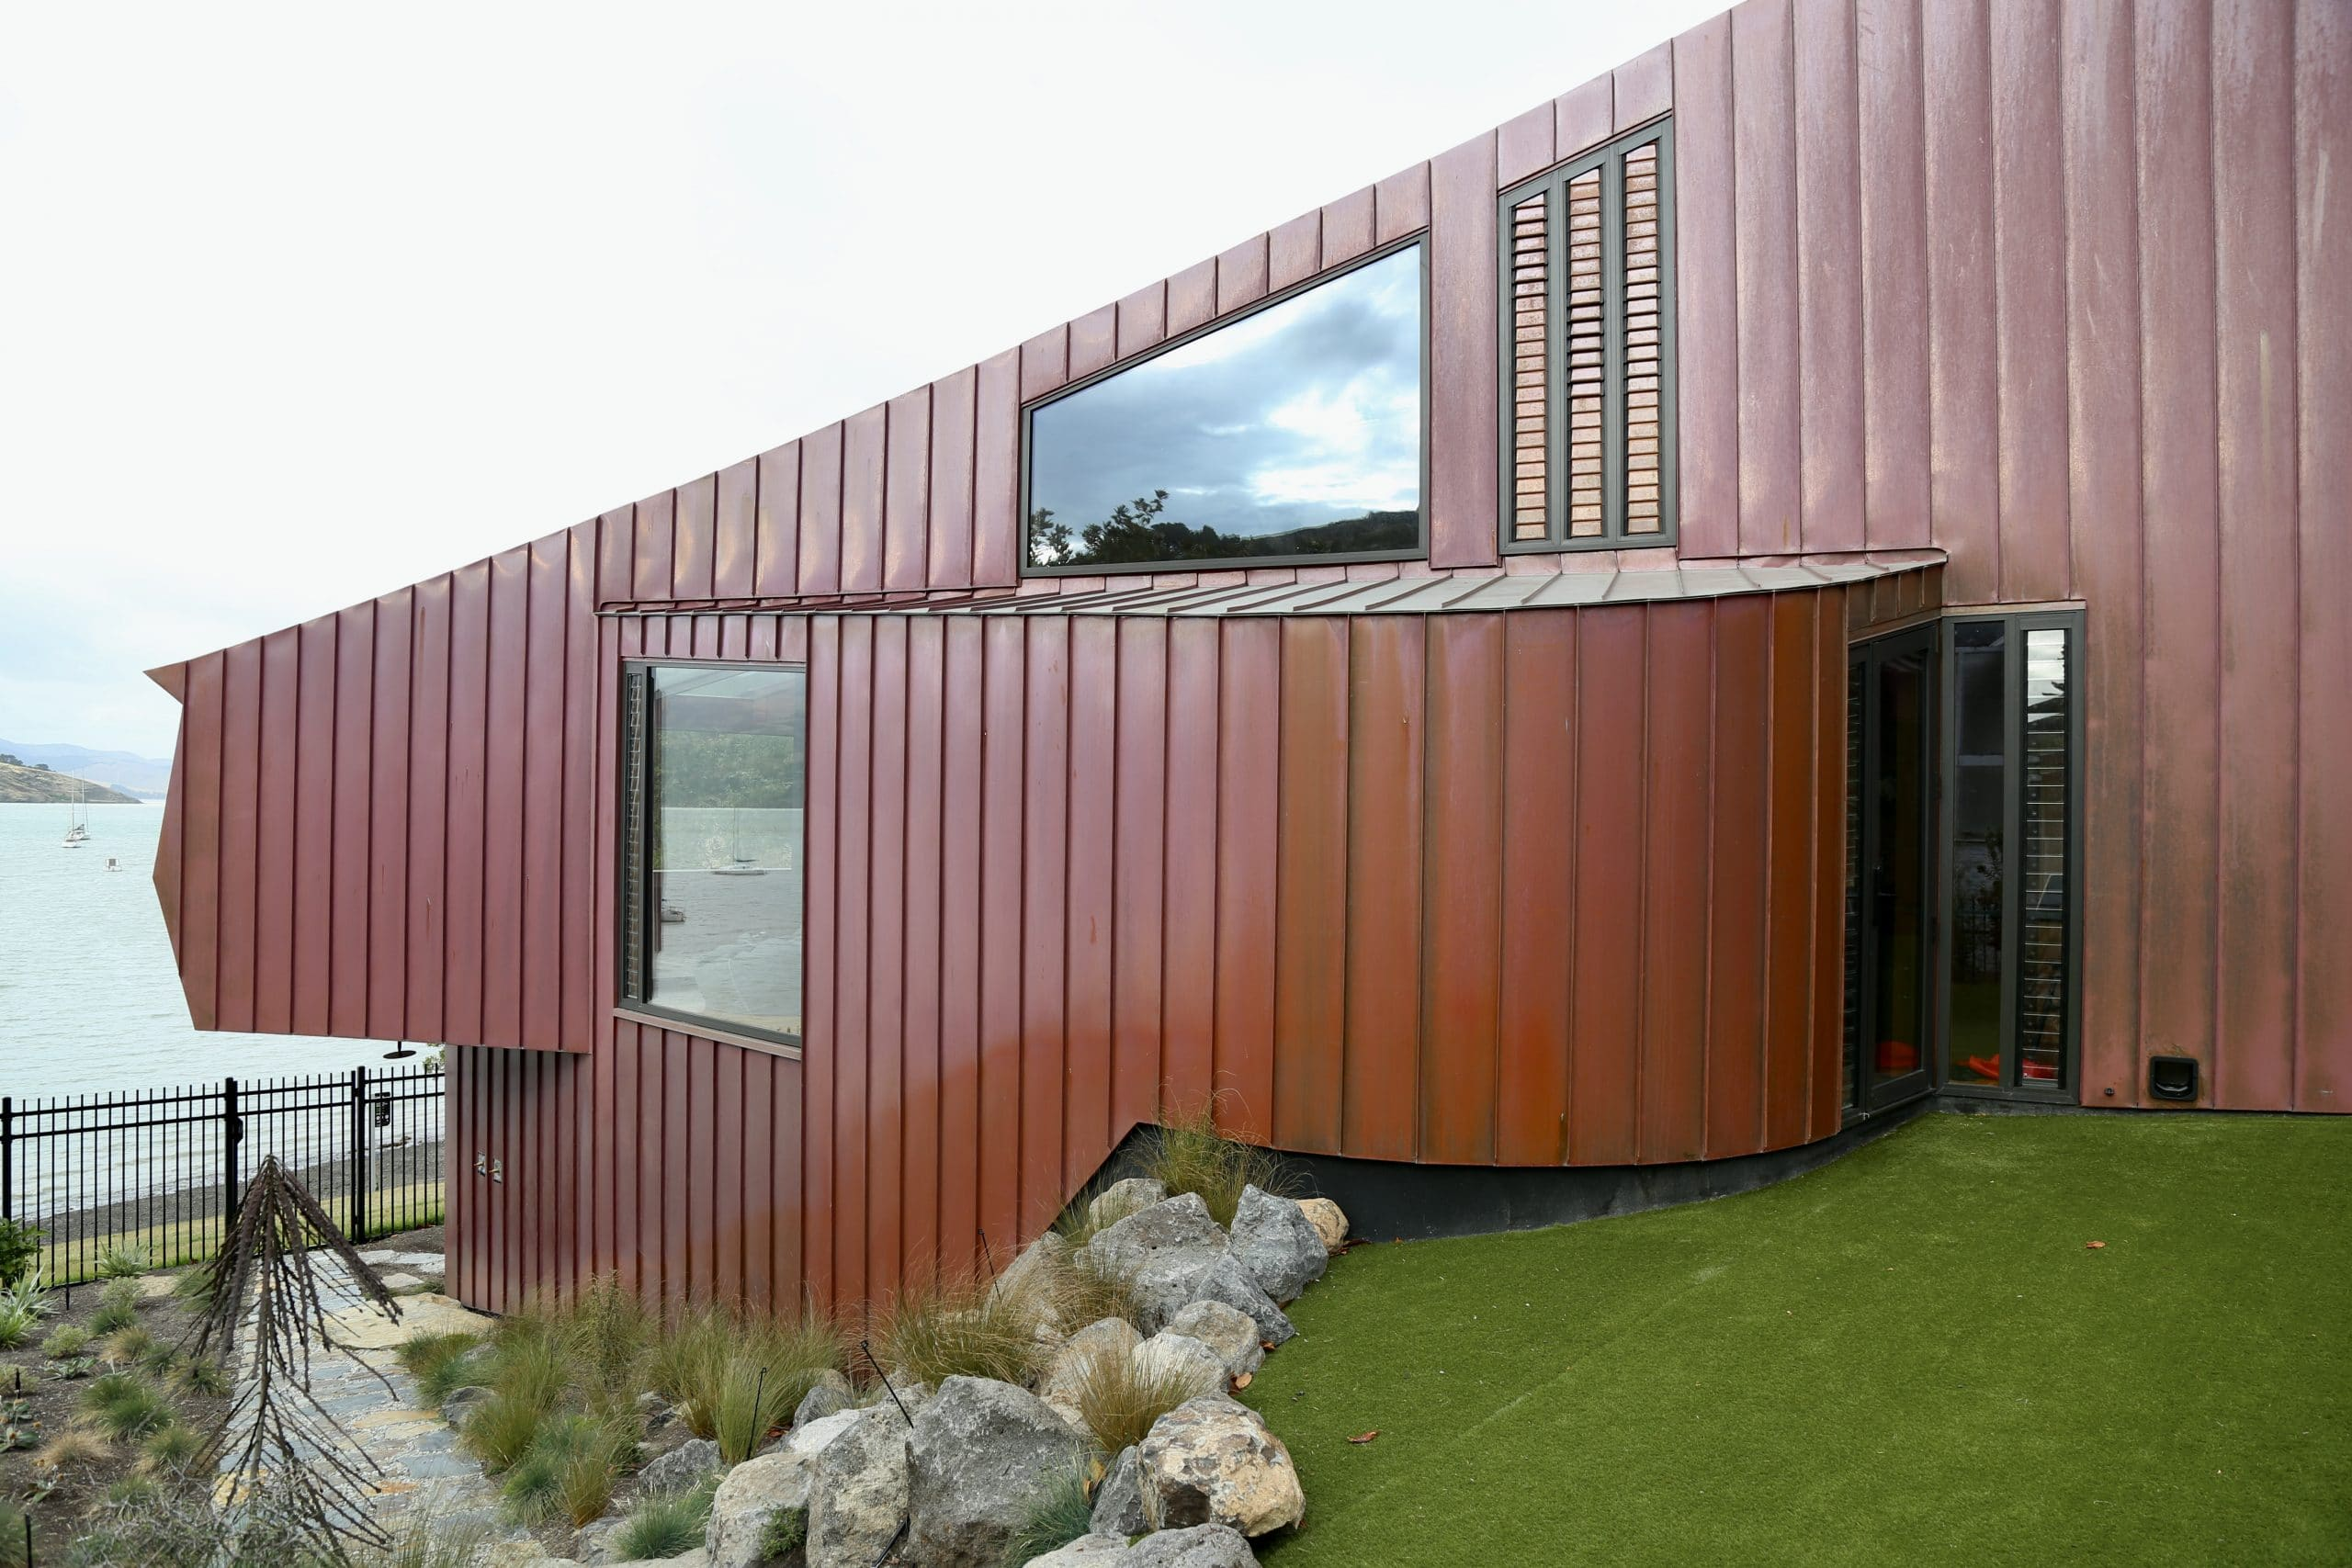 Side view of the Cass Bay House located in New Zealand. The copper walls are clad from Nordic Standard copper and have two windows in them.